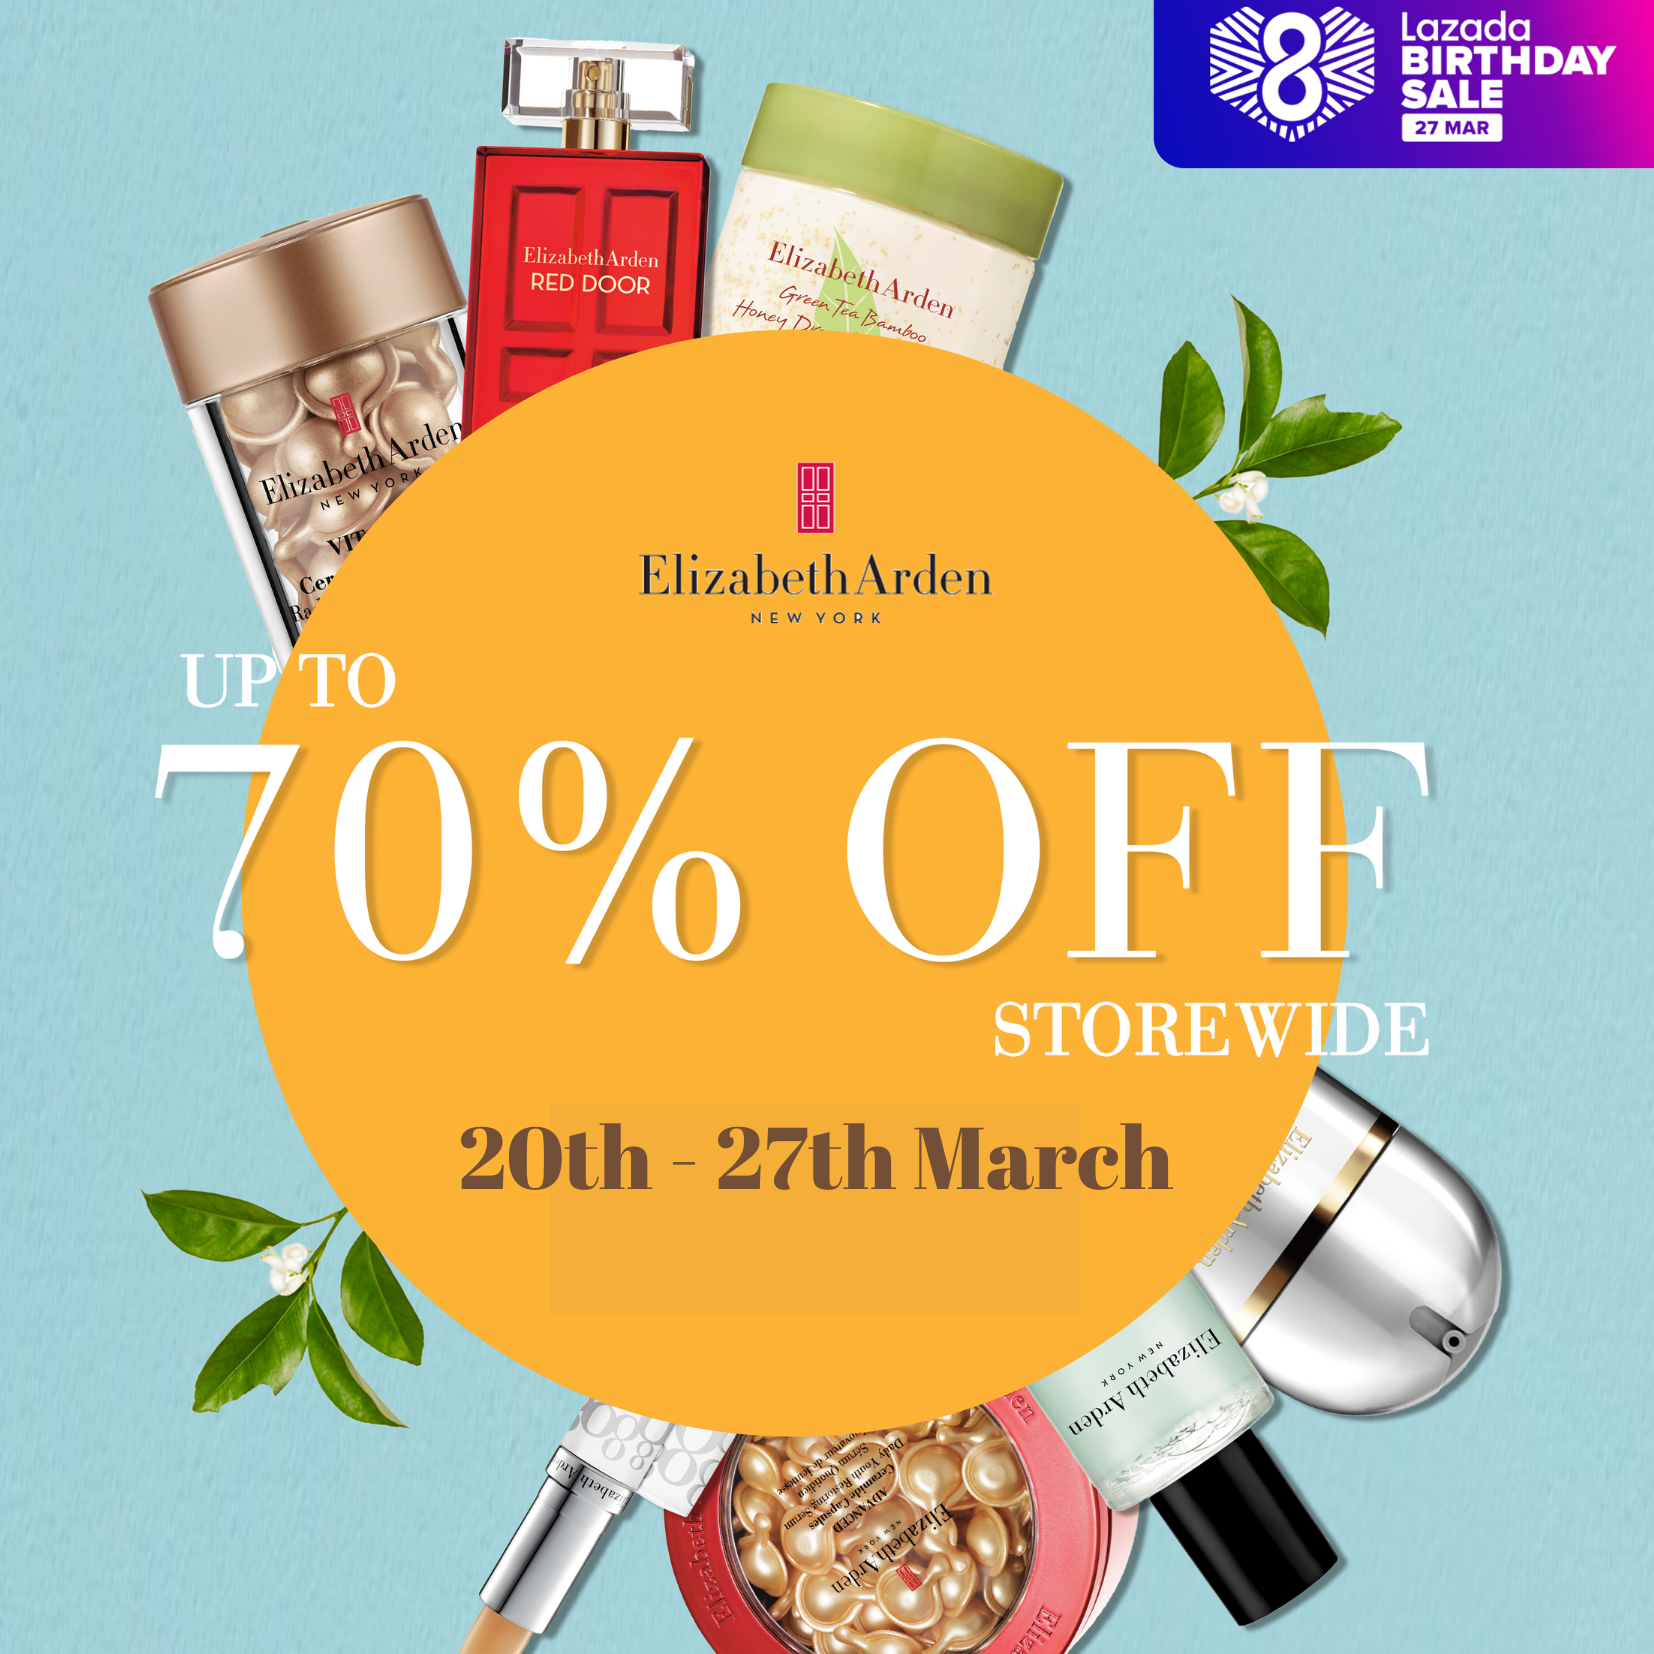 Elizabeth Arden: Up to 70% OFF on Lazada from now till 27th March | Why Not Deals & Promotions